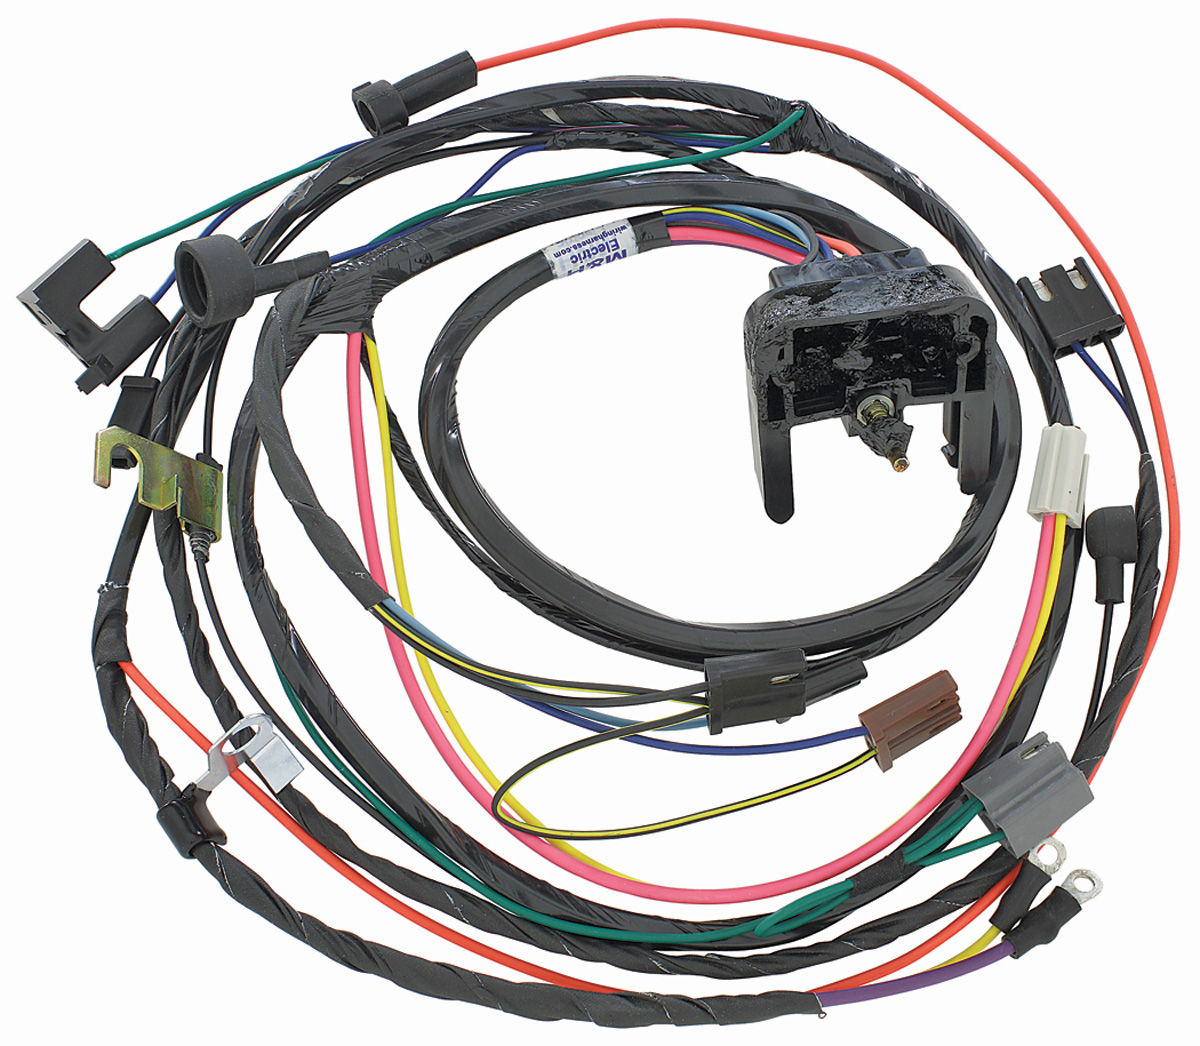 hight resolution of m h chevelle engine harness 396 454 hei w manual trans fits 1970 1970 chevelle ss dash wiring harness 1970 chevelle wiring harness